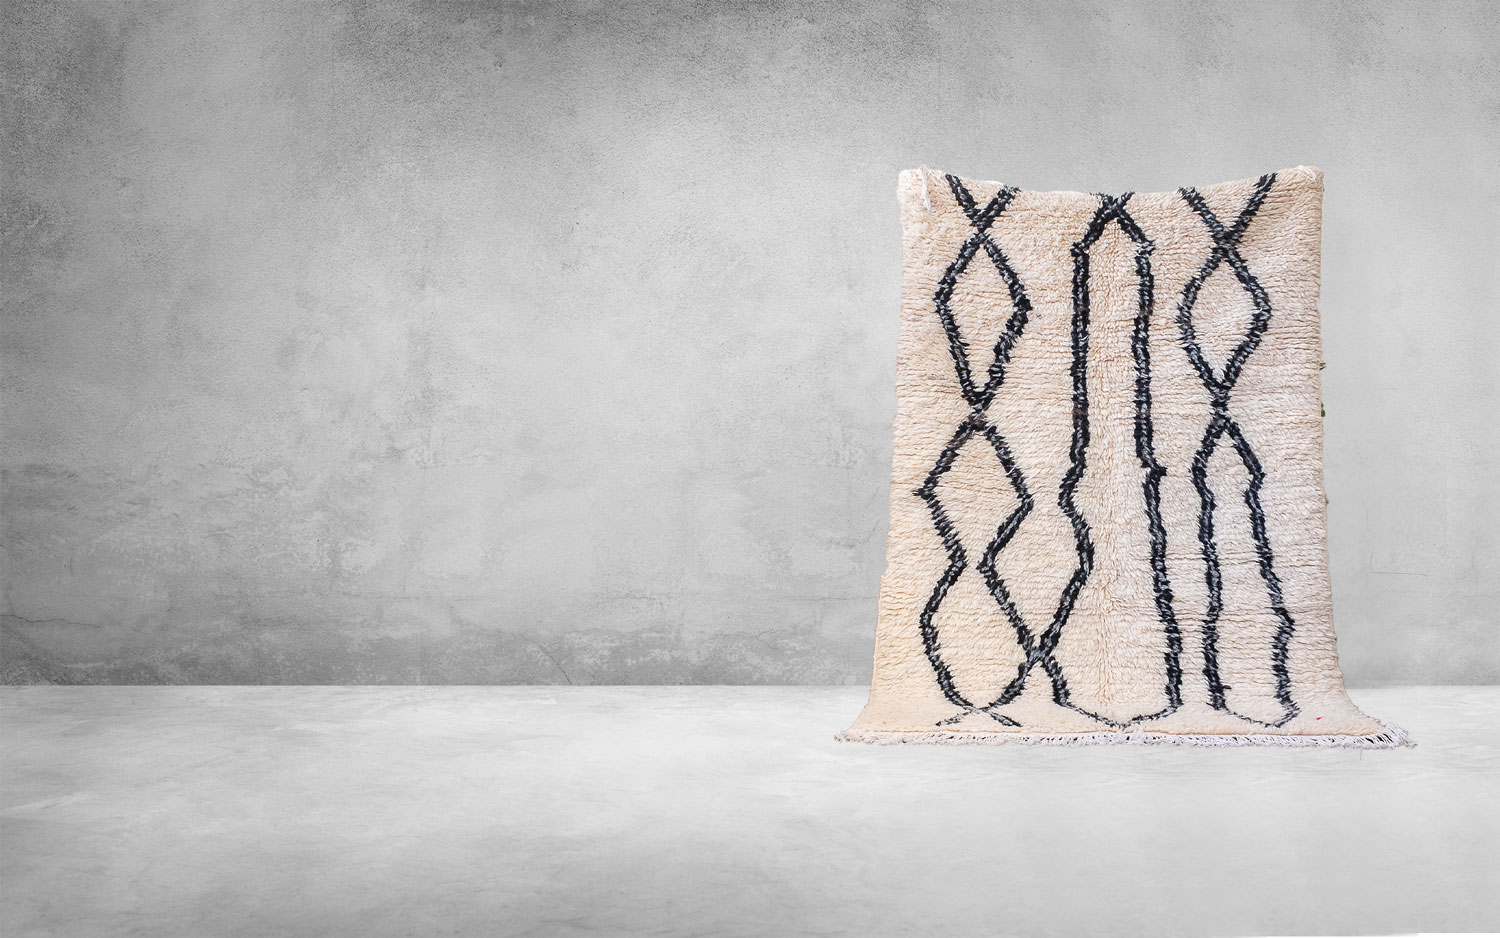 Wool Berber Carpet vs Berber style rugs: Beginner's guide on how to identify a true Moroccan rug​